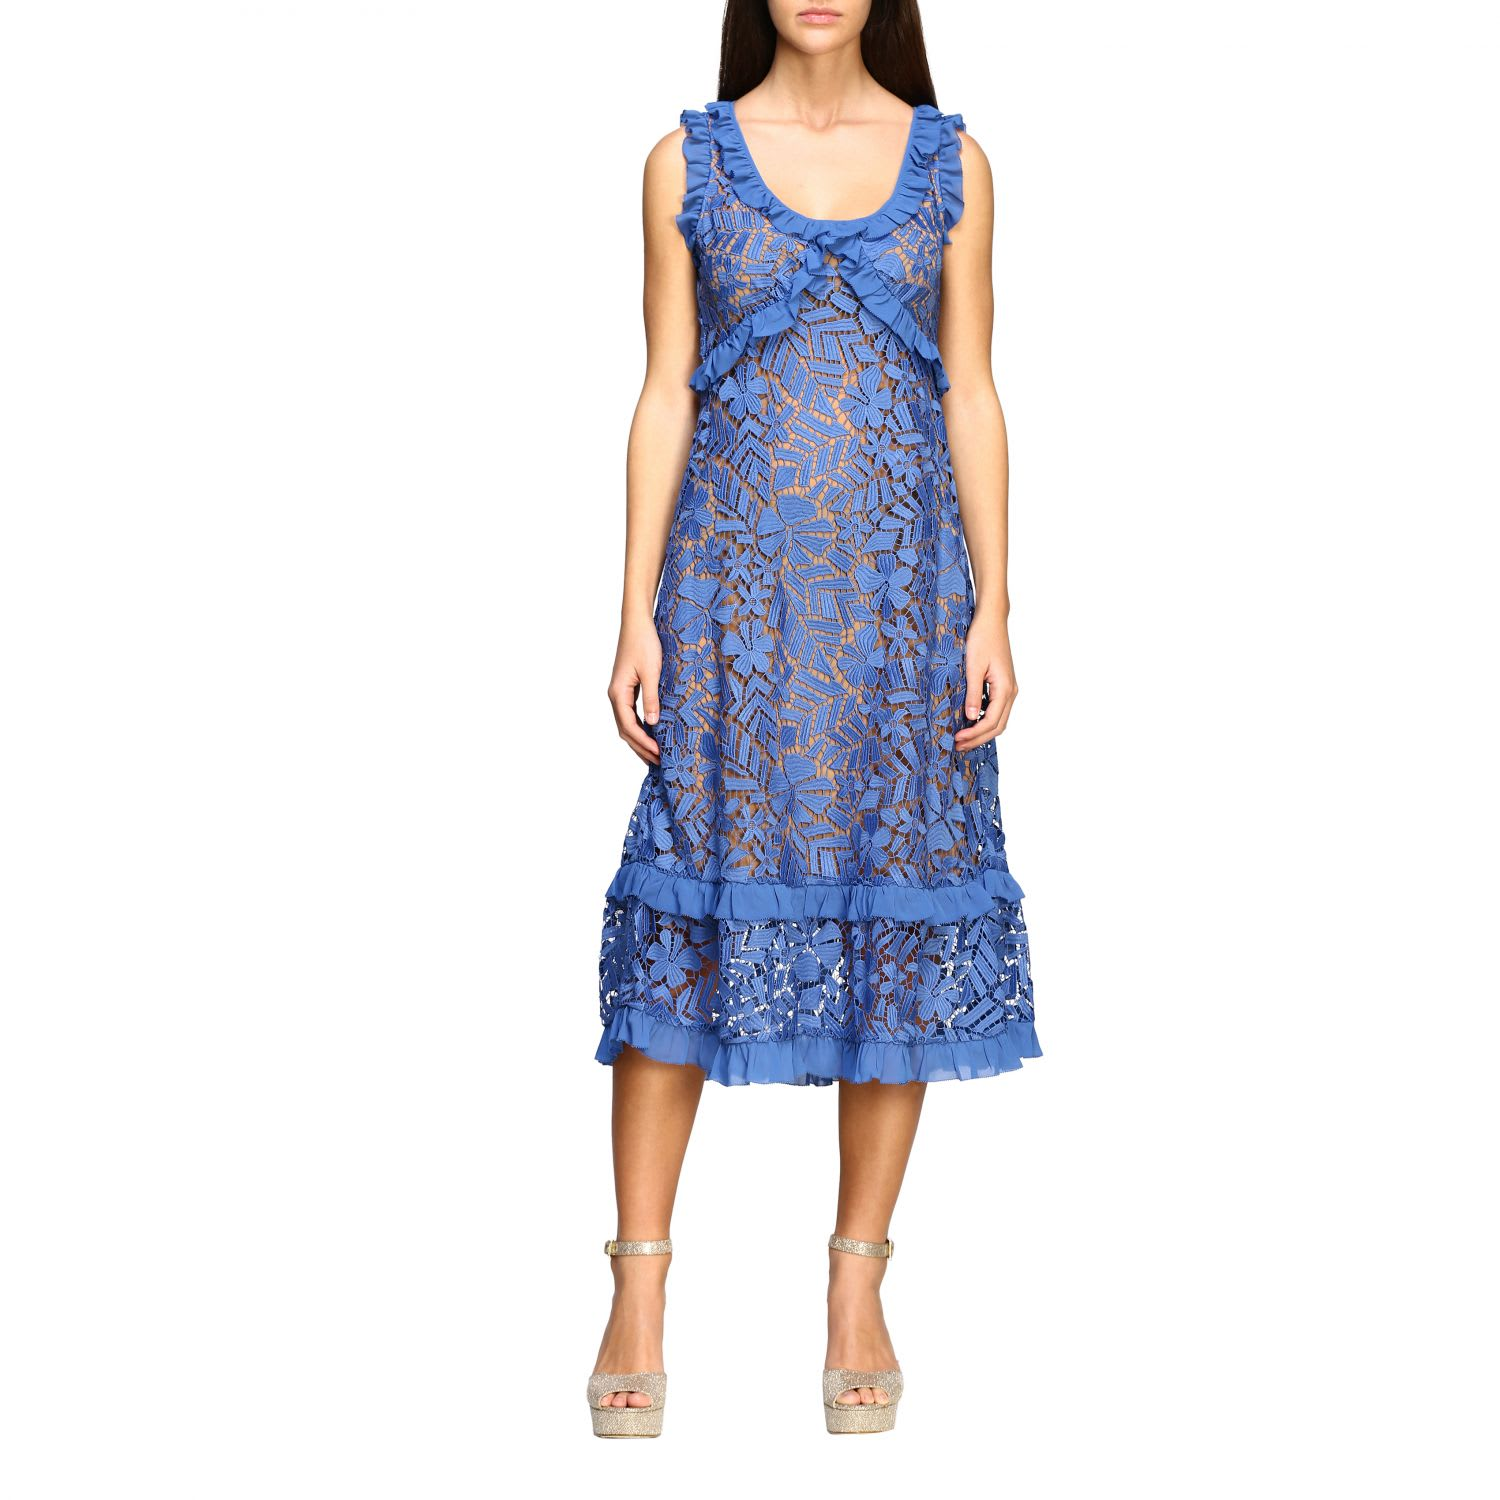 Buy Michael Michael Kors Dress Michael Michael Kors Floral Lace Dress online, shop MICHAEL Michael Kors with free shipping